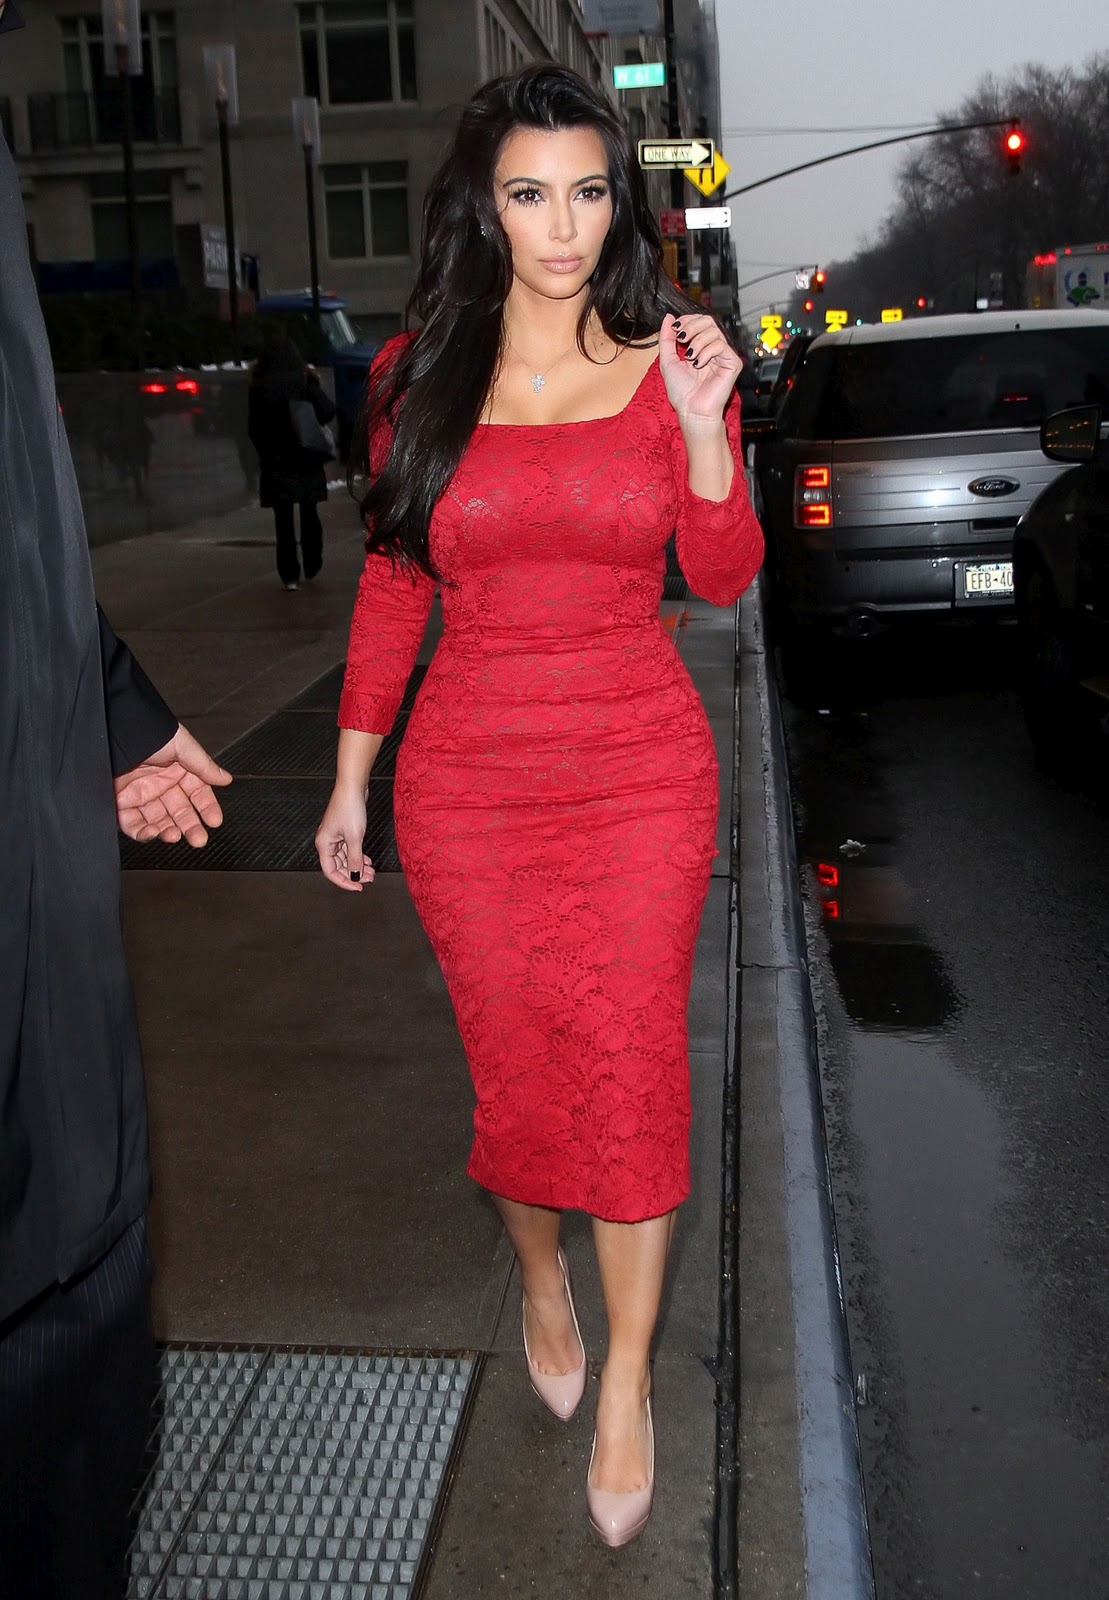 Fashion Style Kim Kardashian At In Dress Fashion Show Pictures Photoshoot